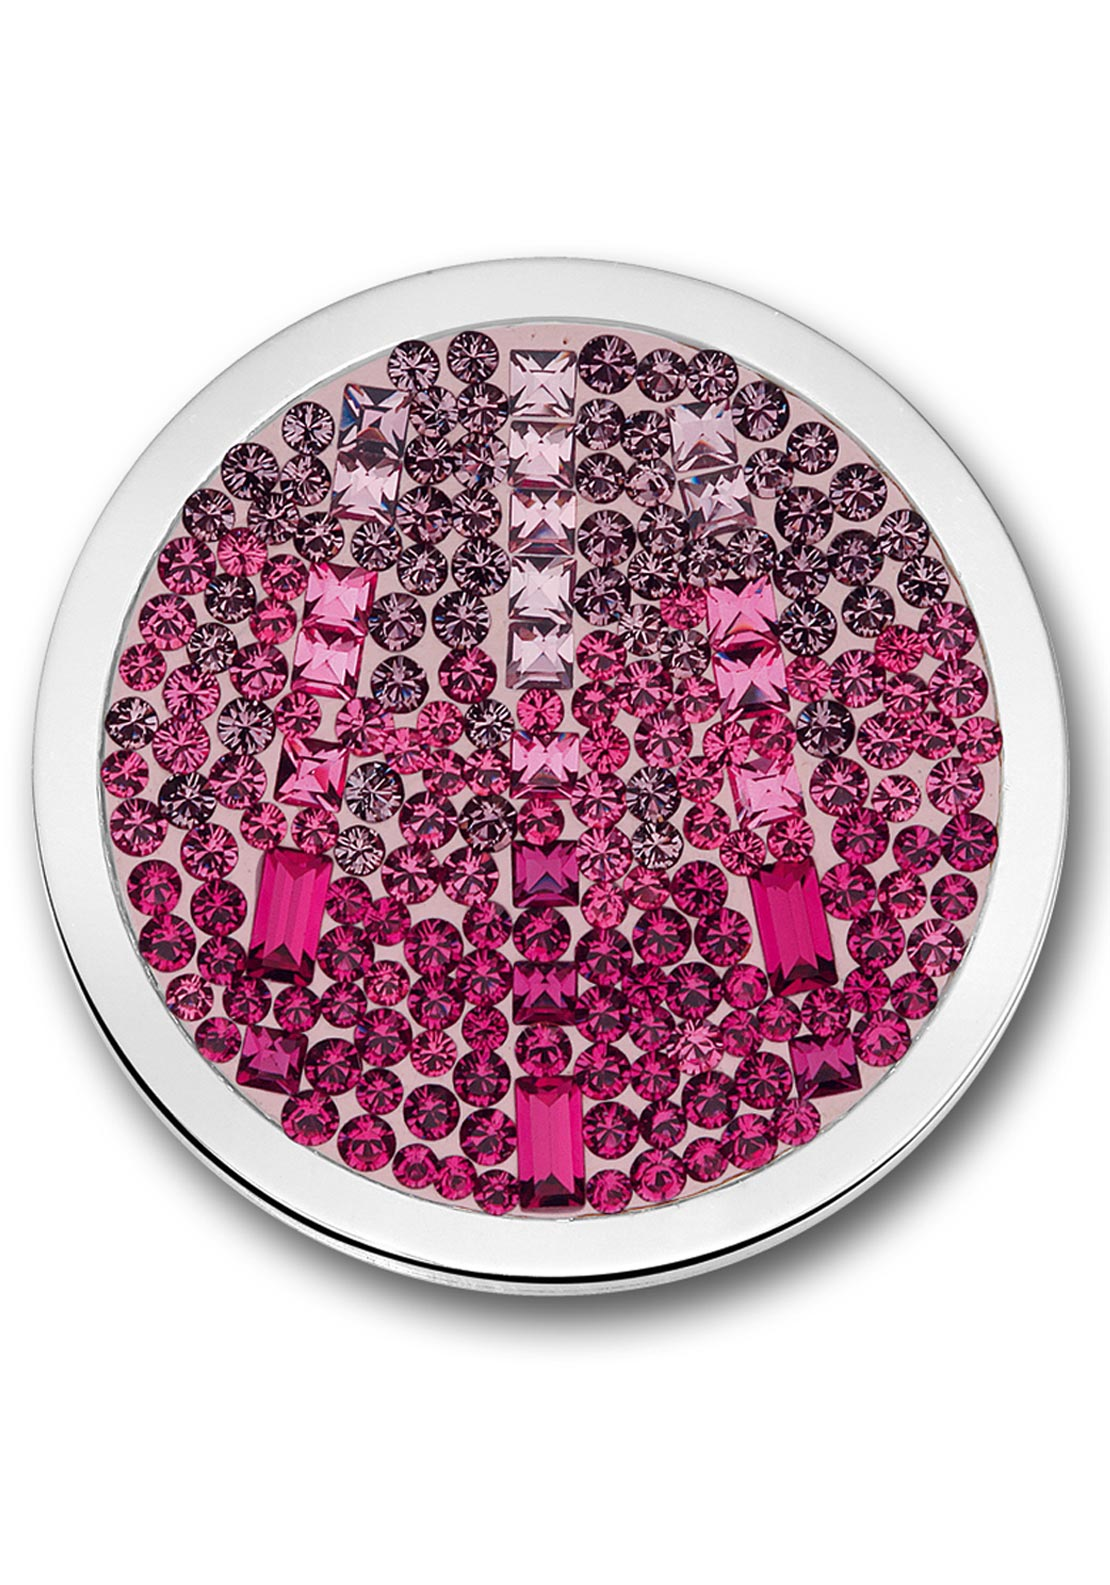 Mi Moneda Large Swarovski Cascada Moneda Coin, Hot Pink